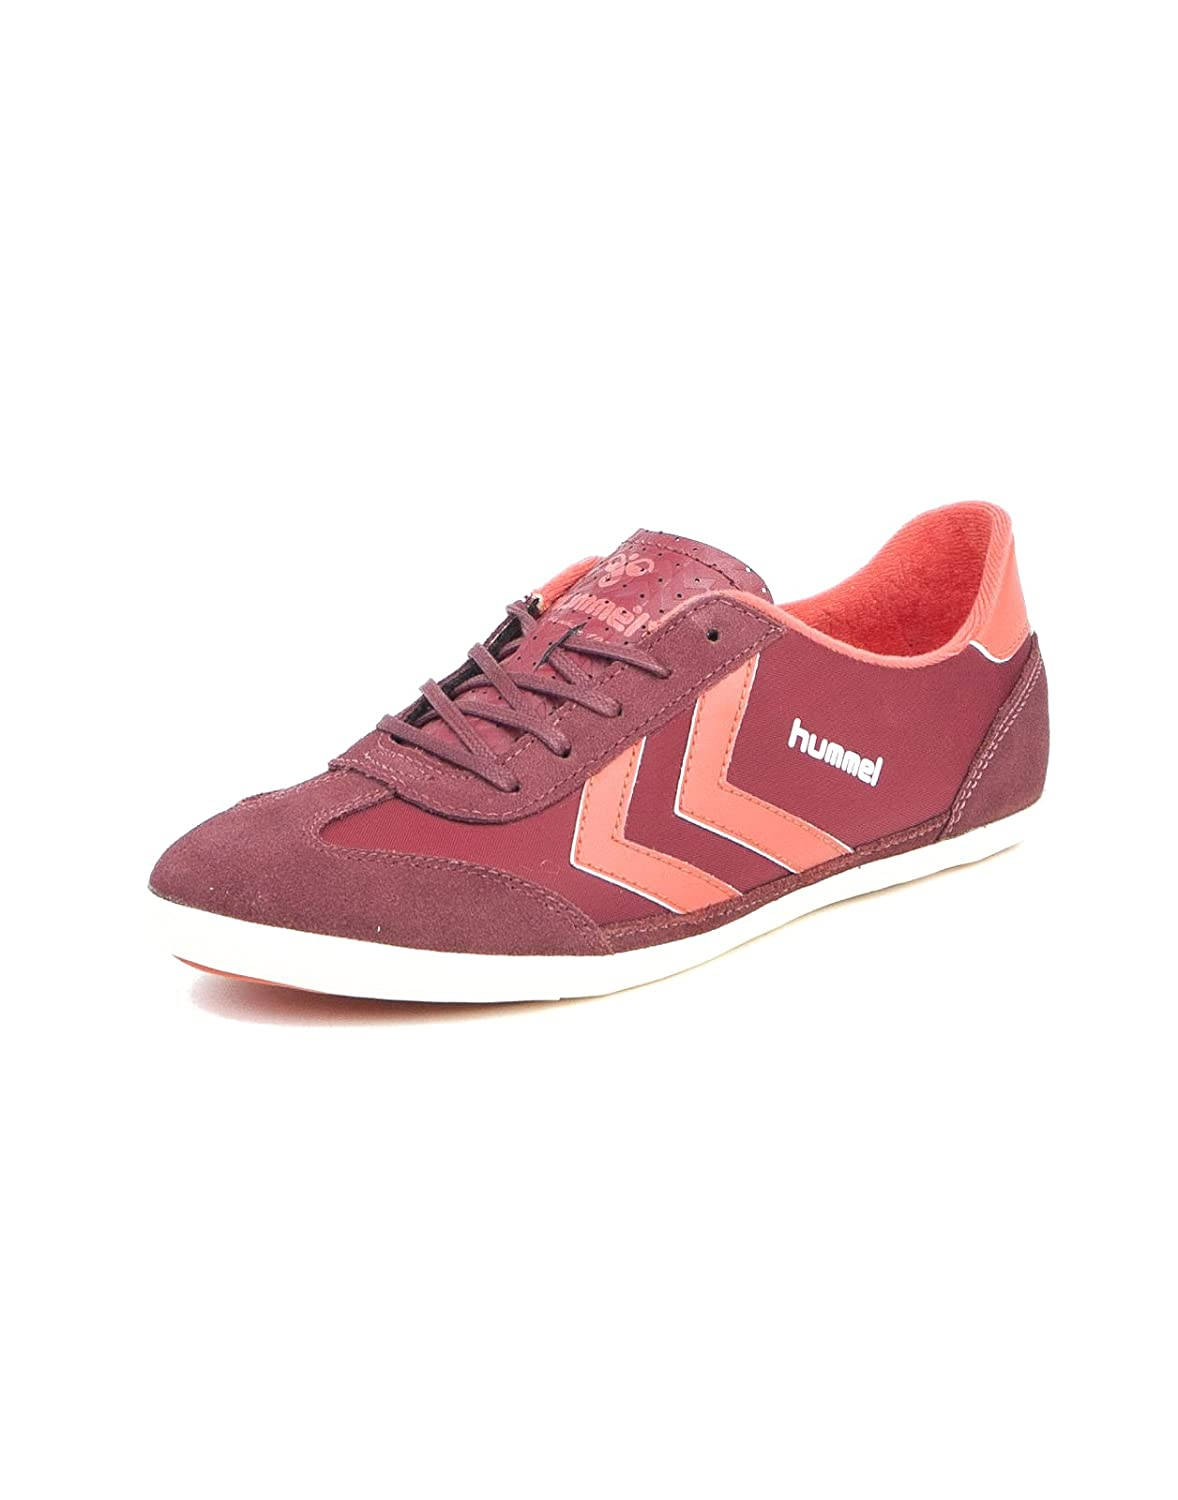 pretty nice 2a11f f3e27 hummel Venice Retro Sneaker Oxblood, Red, 36: Amazon.co.uk ...